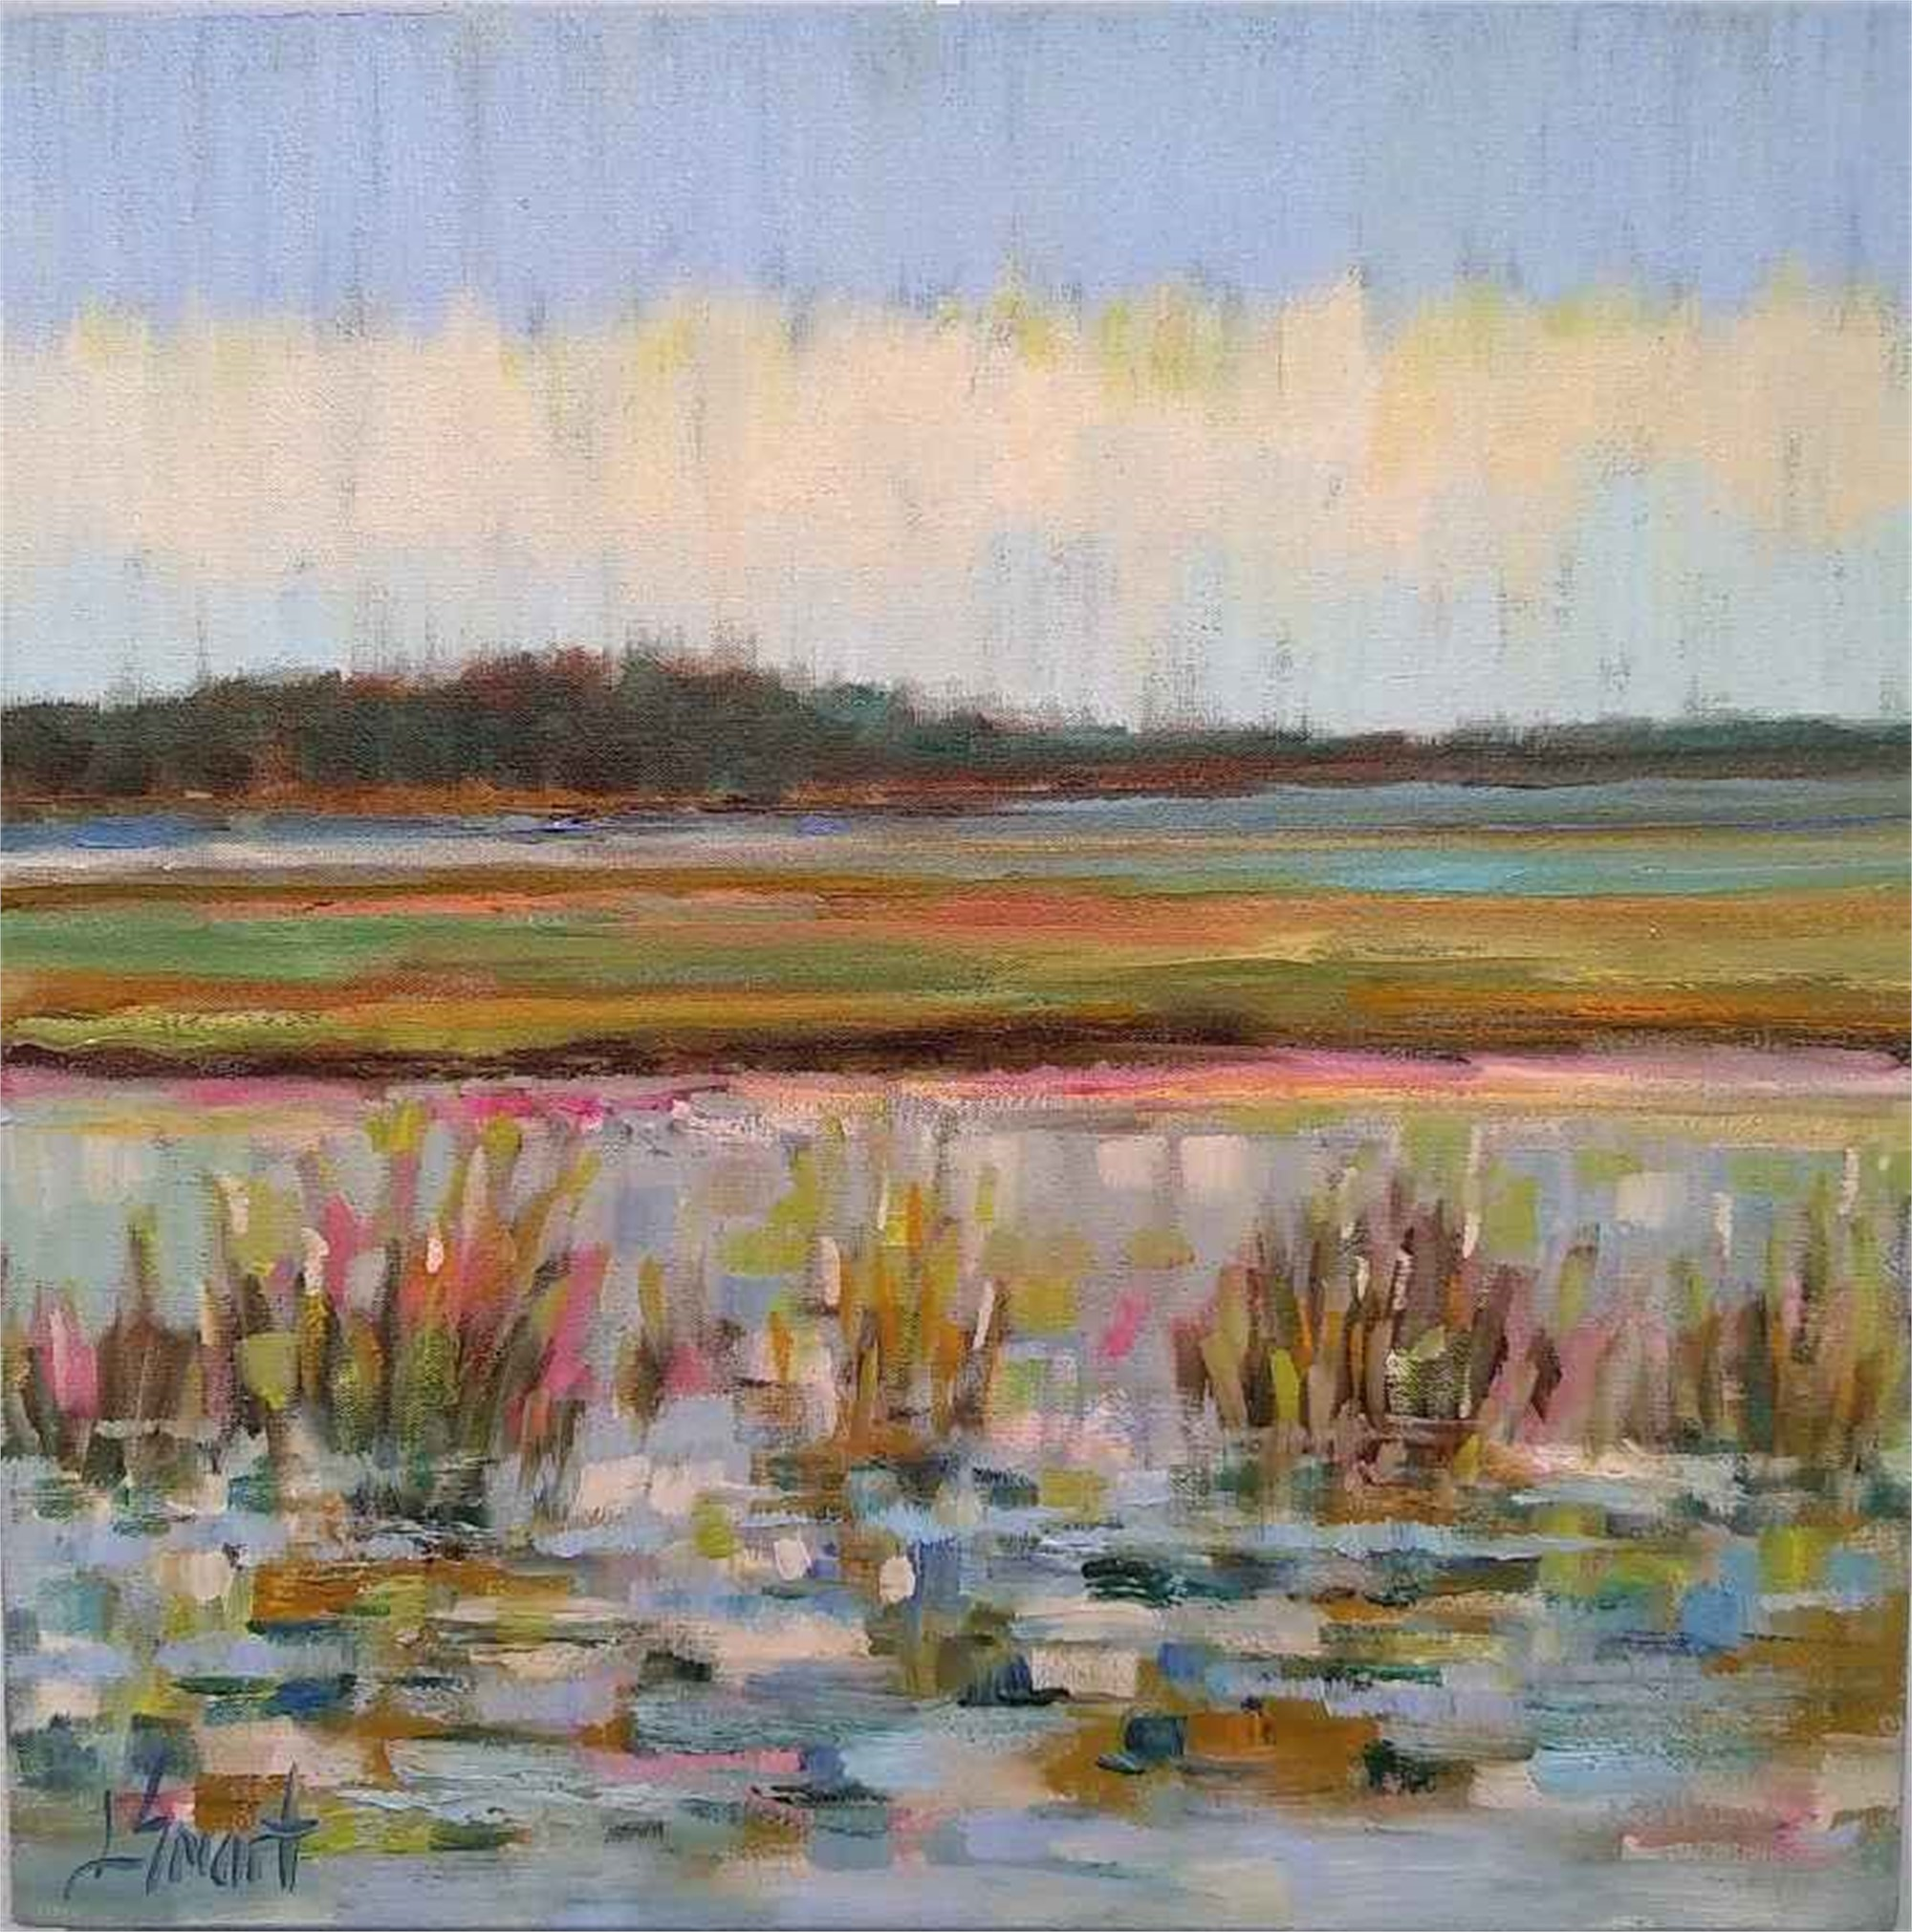 Glistening Marsh Water by Libby Smart